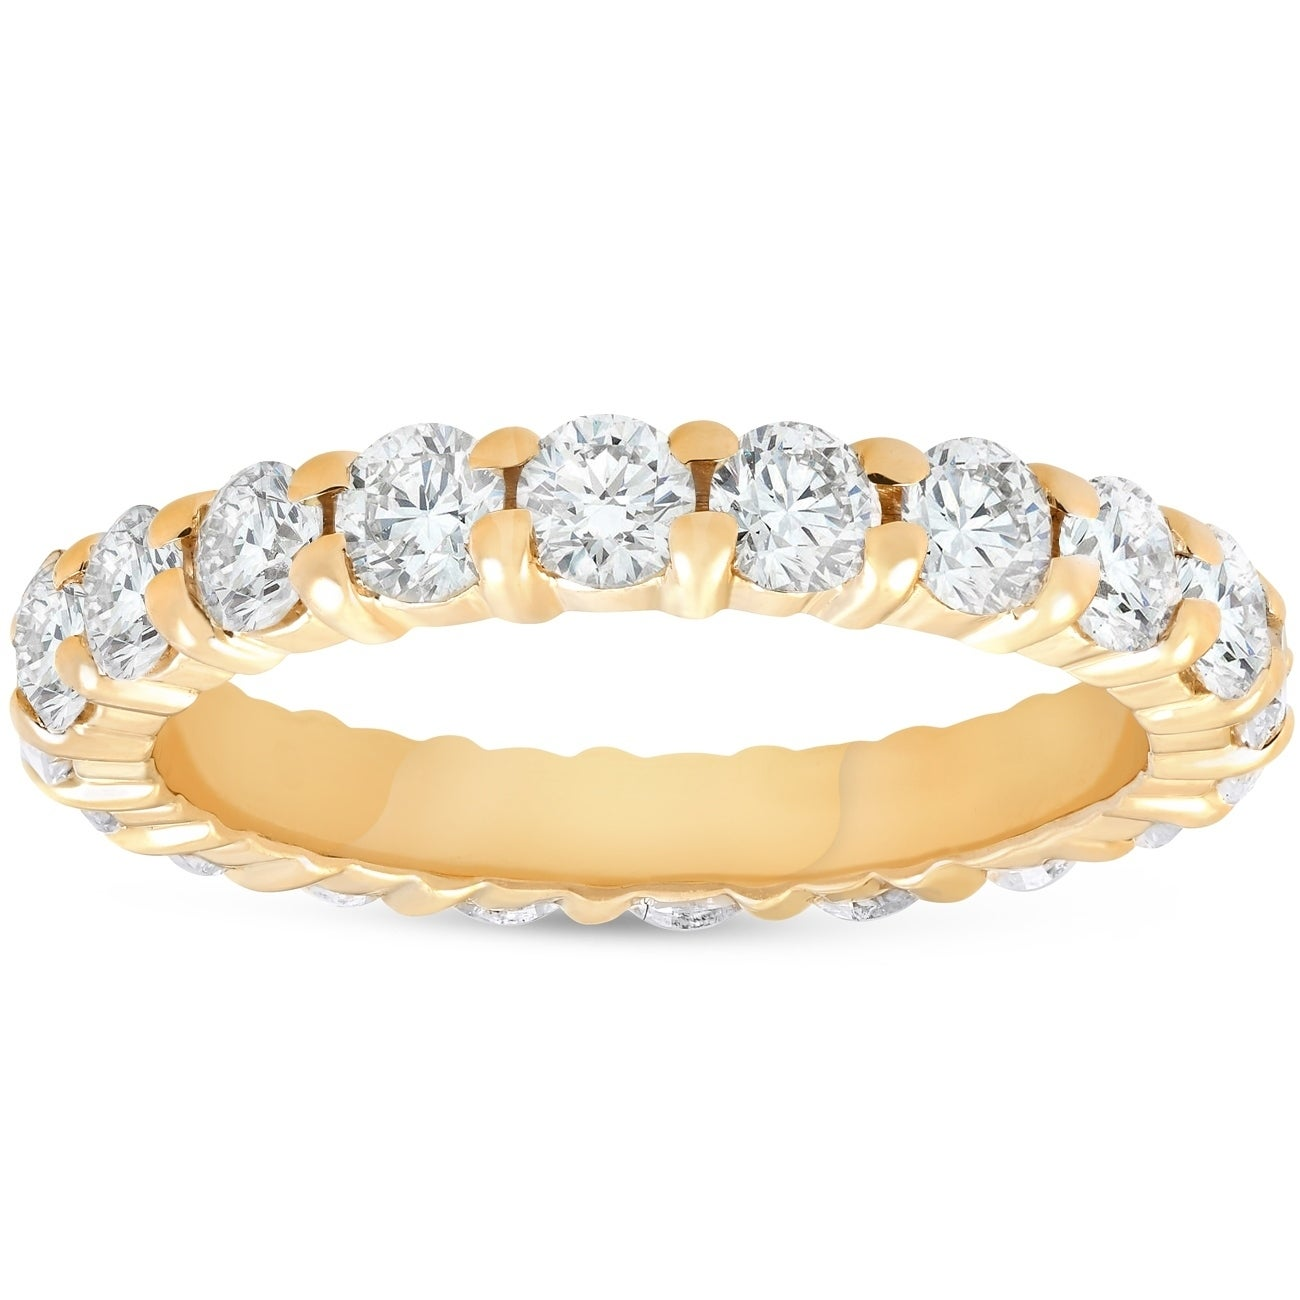 t band gold w bands in anniversary cut ct trillion products two tone diamond carat